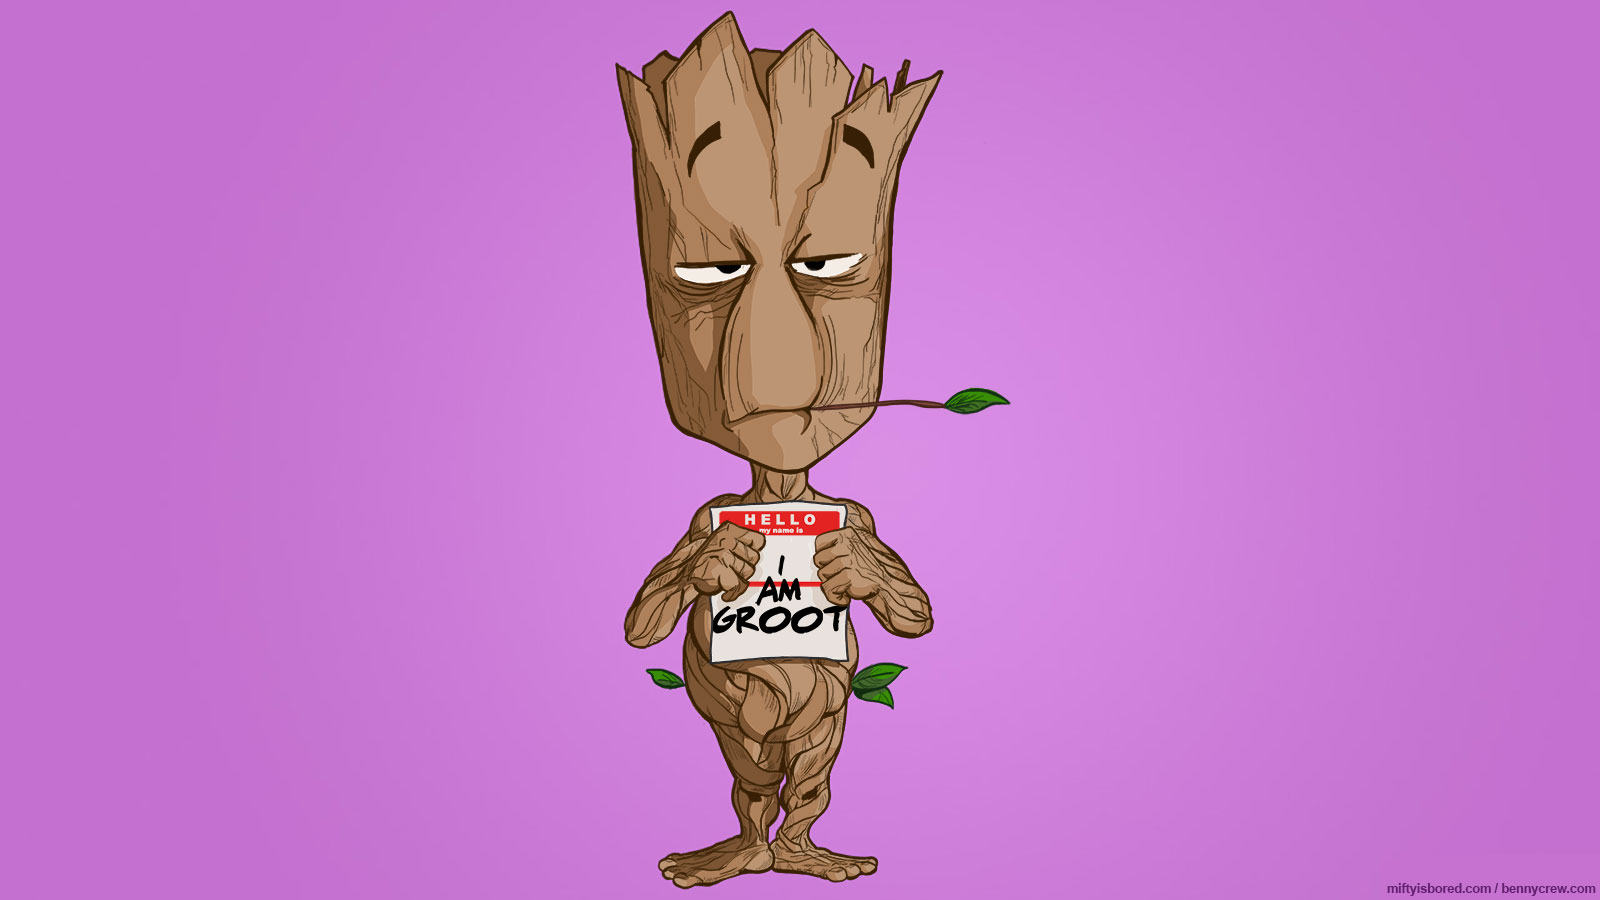 006-Hello-i-am-groot-v2